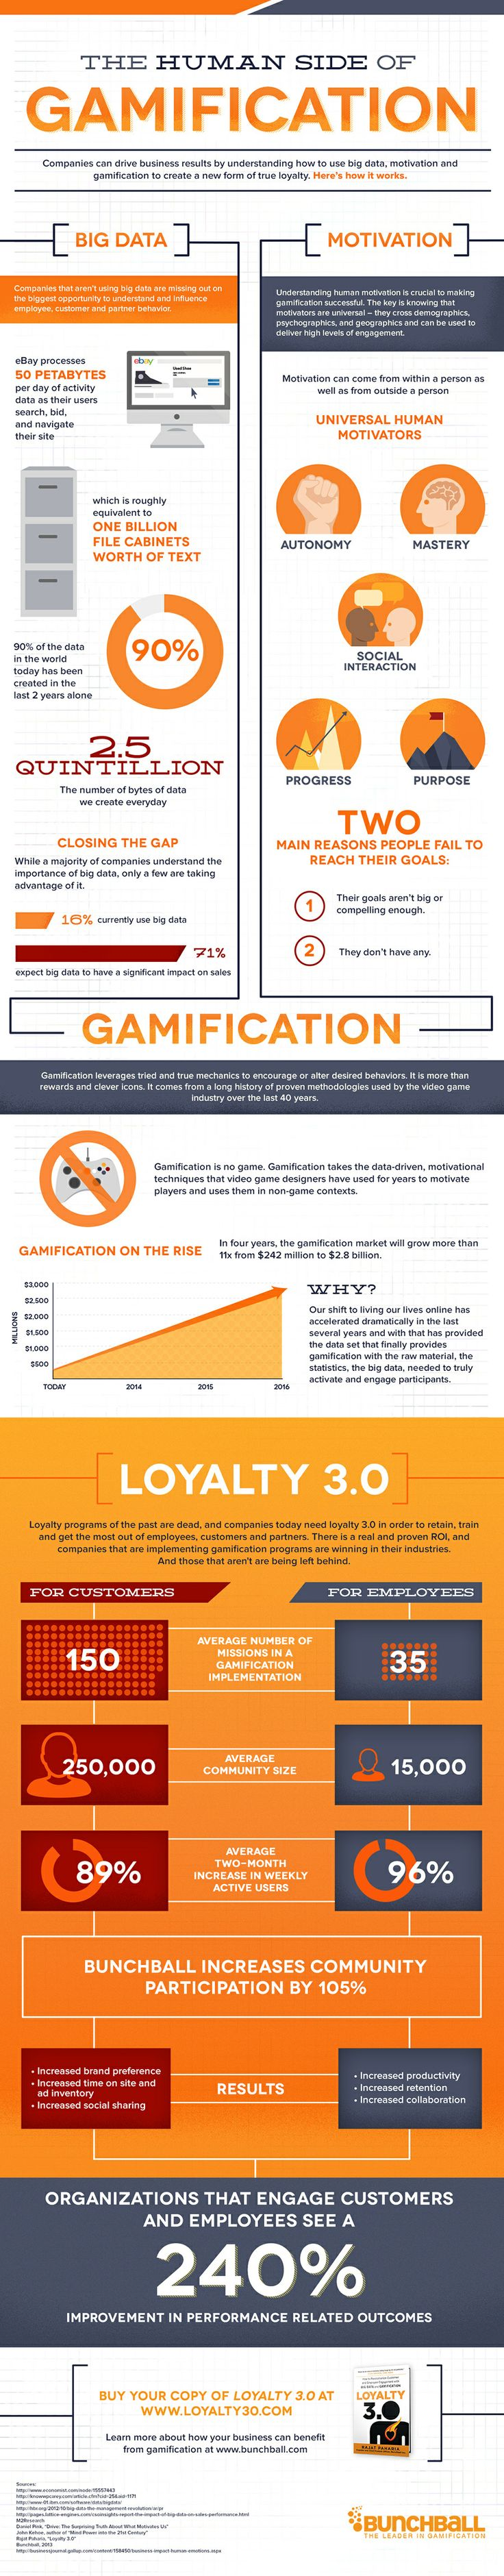 The Human Side of #Gamification